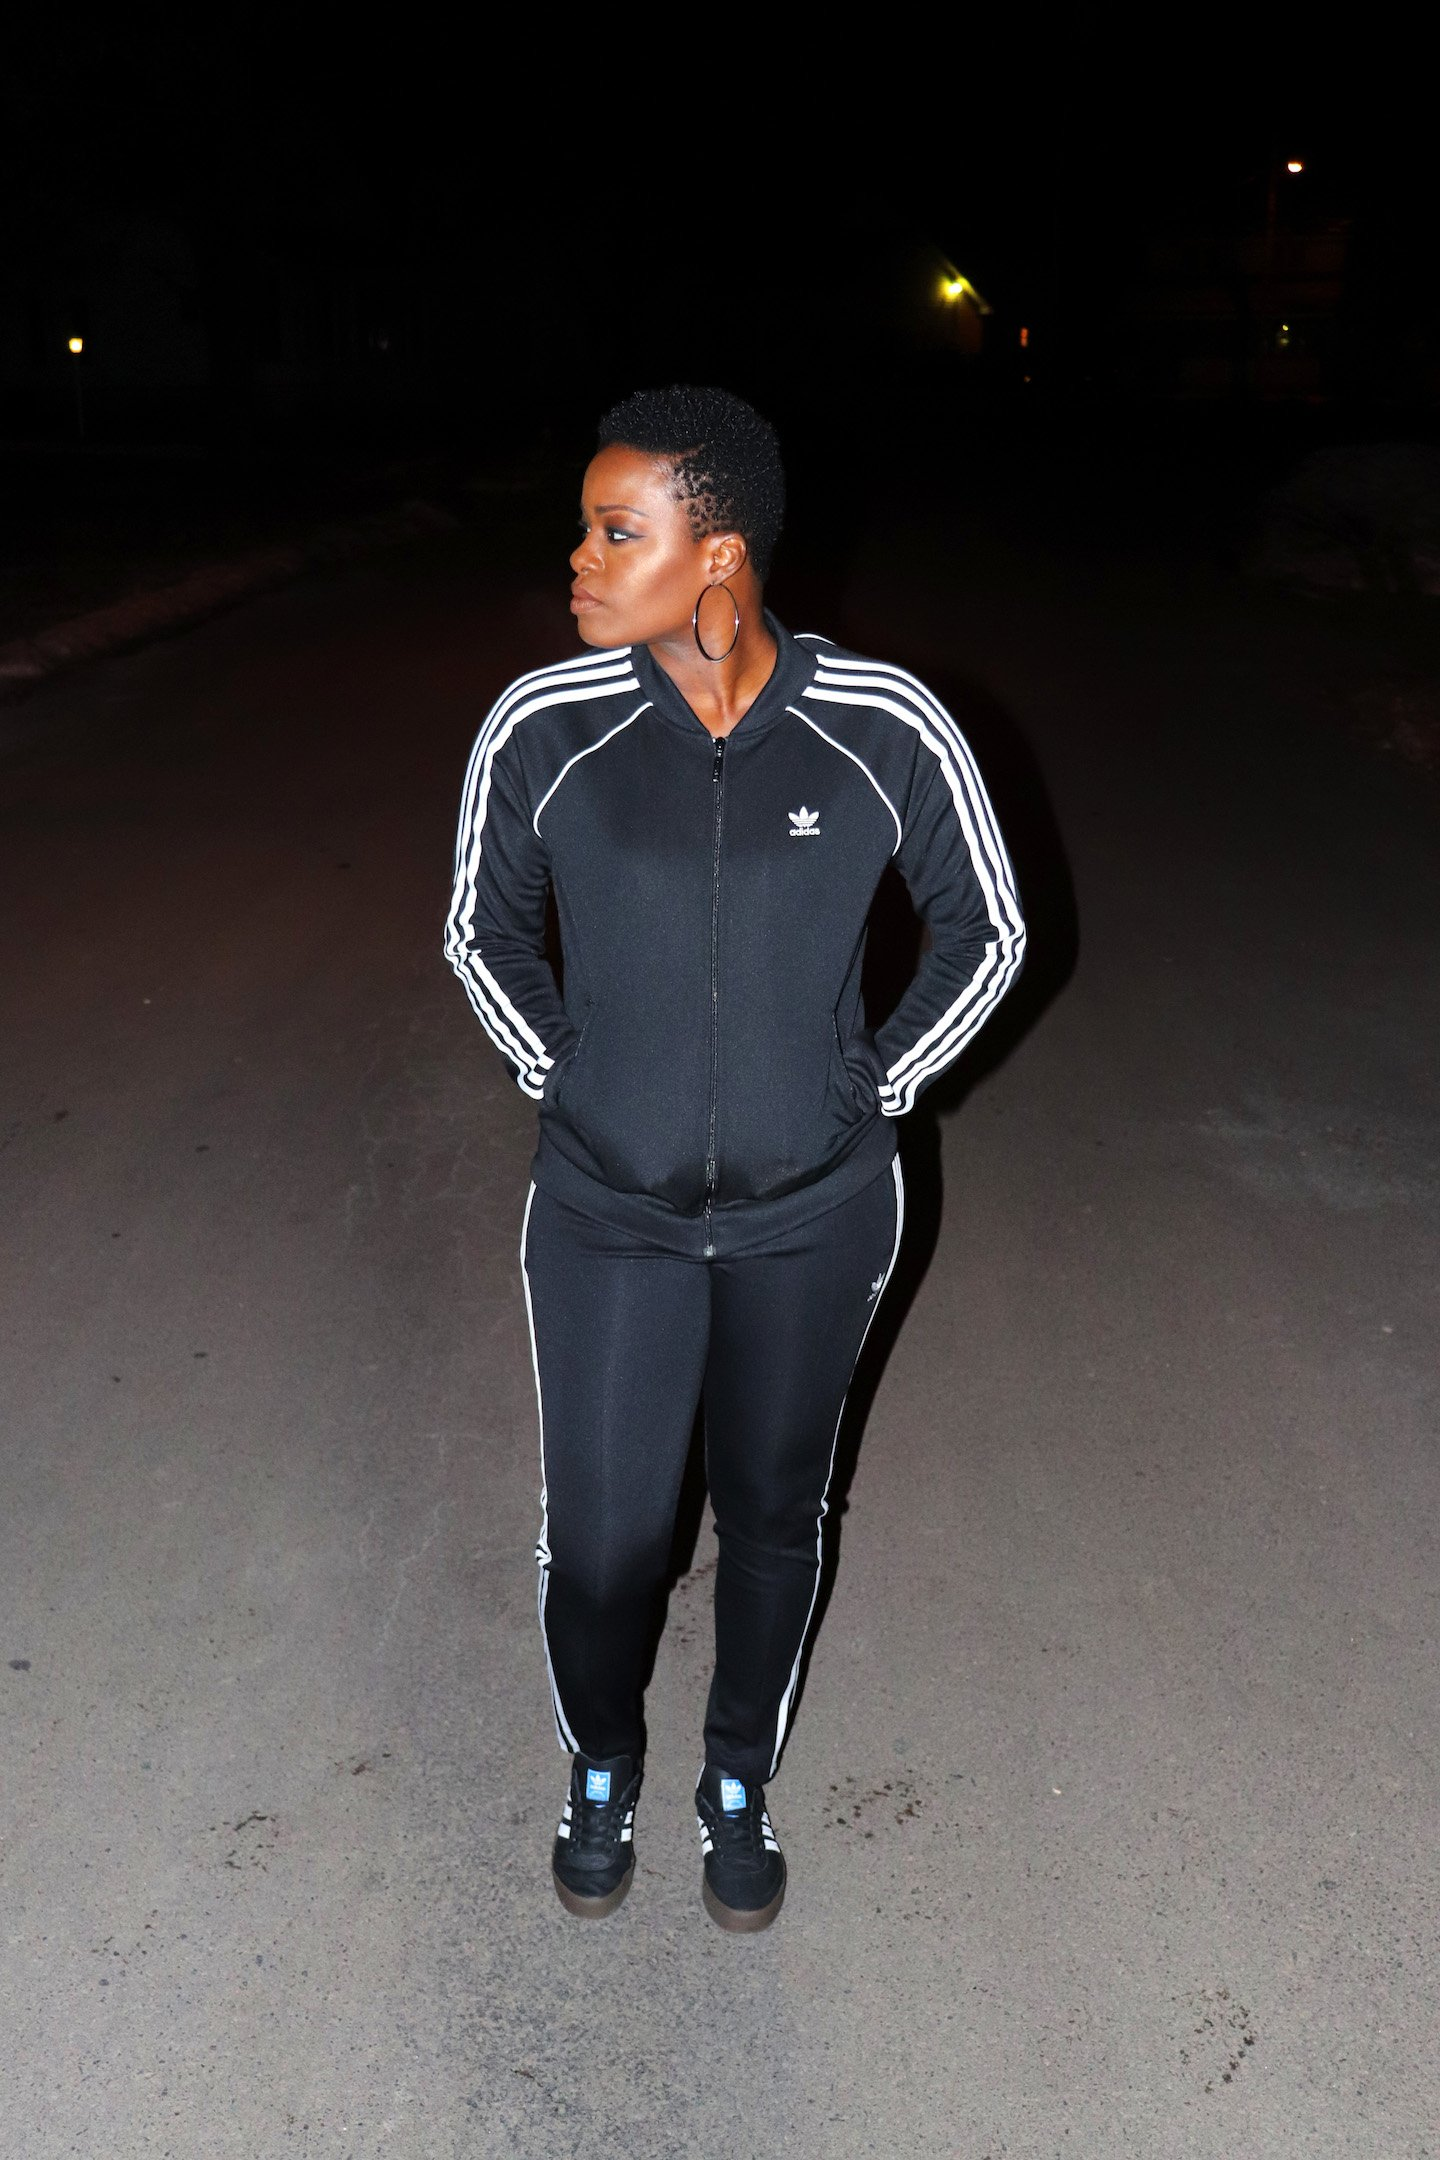 How To Wear An Adidas Track Suit